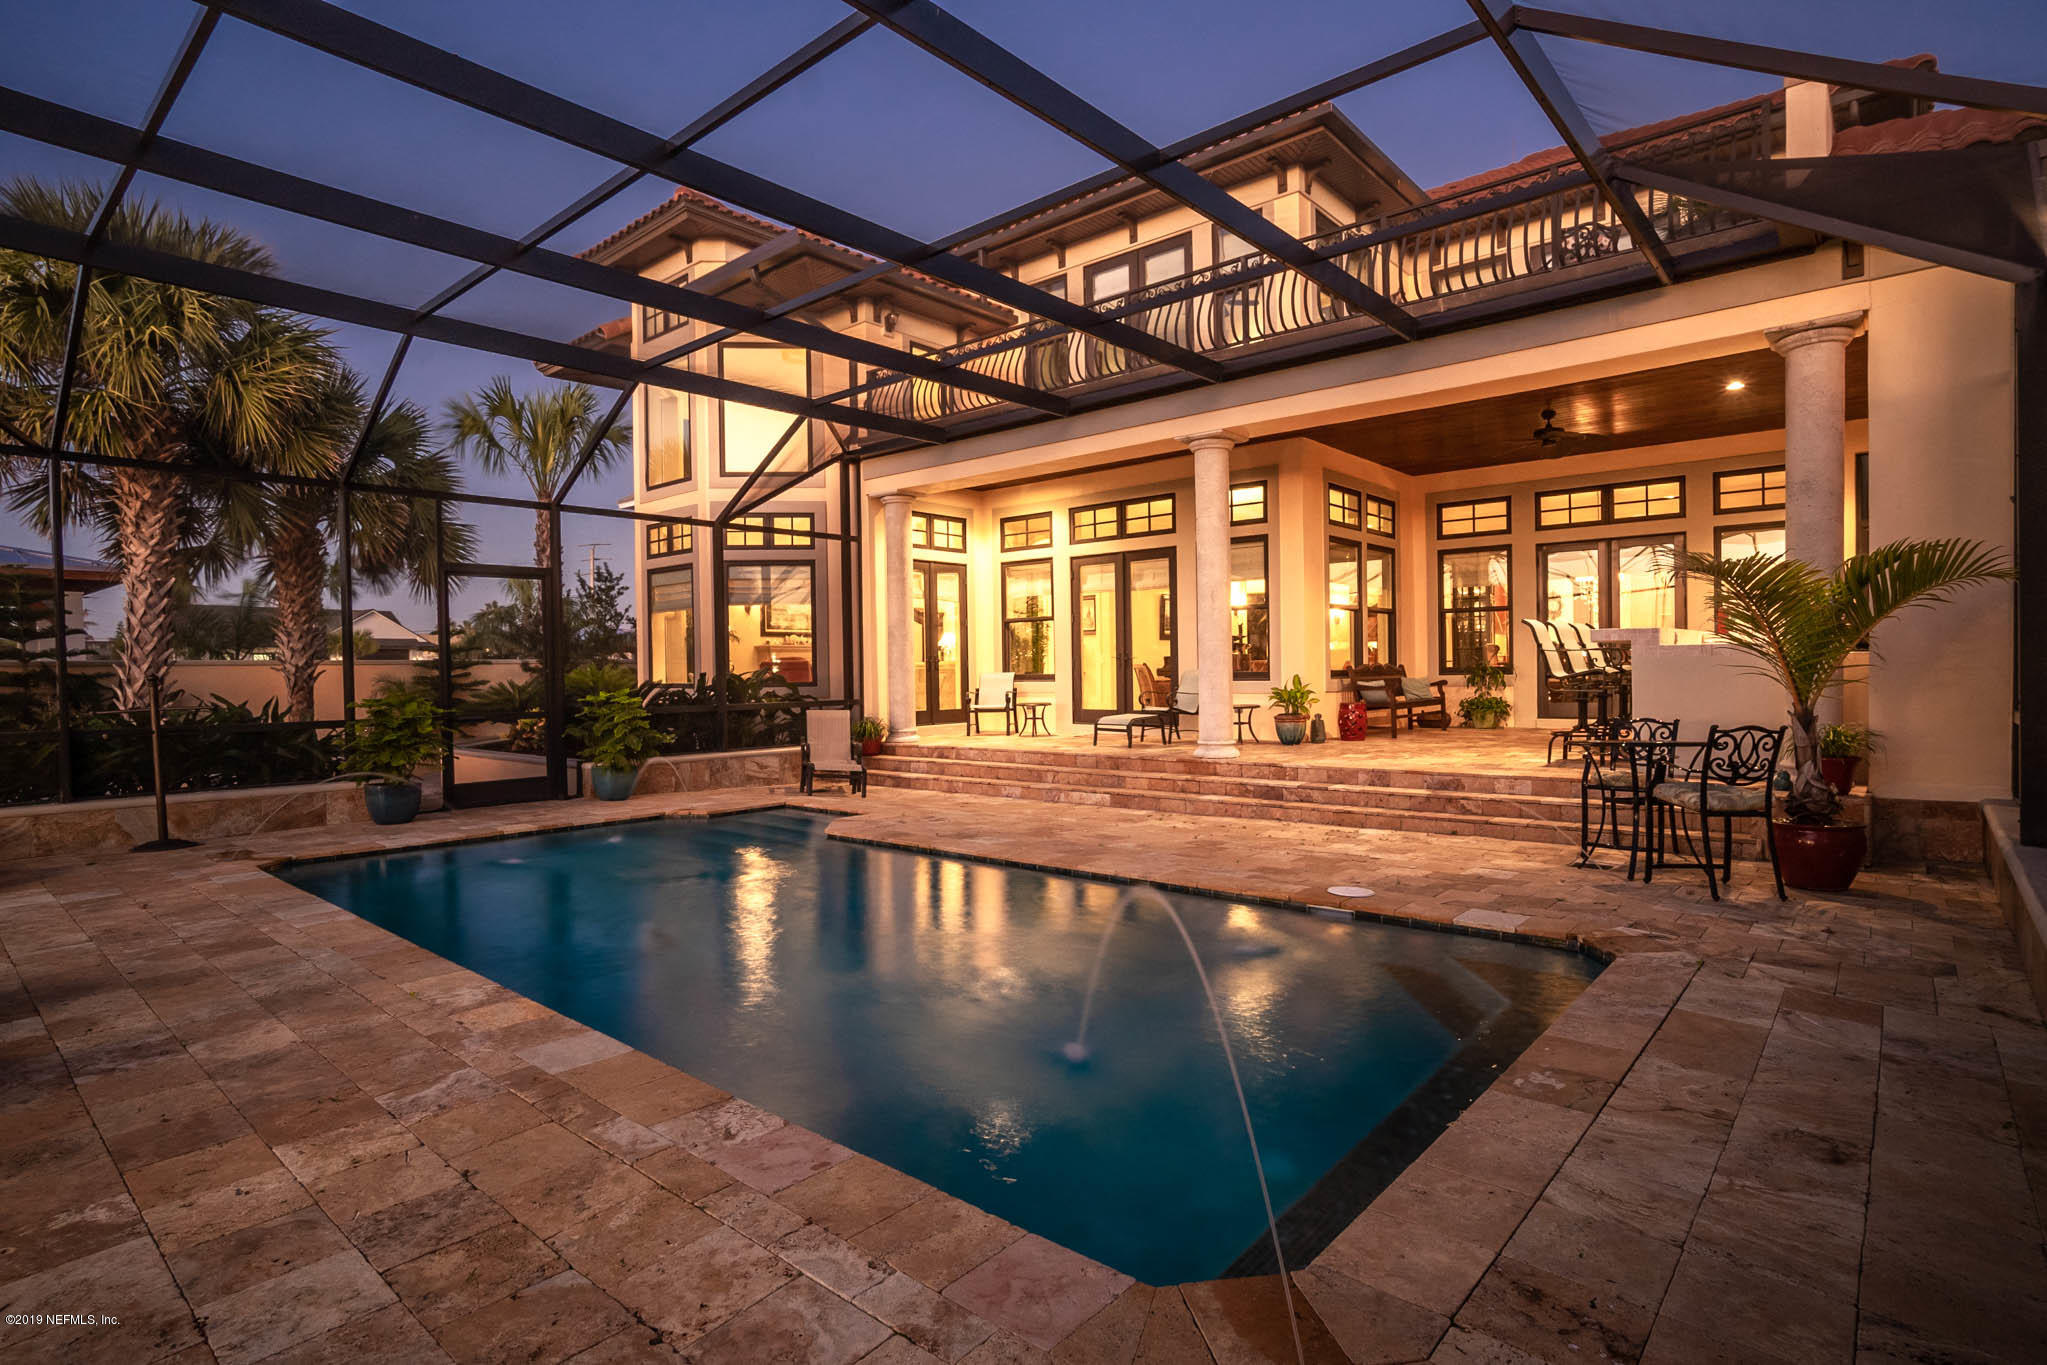 7965 A1A, ST AUGUSTINE, FLORIDA 32080, 5 Bedrooms Bedrooms, ,5 BathroomsBathrooms,Residential,For sale,A1A,1025611